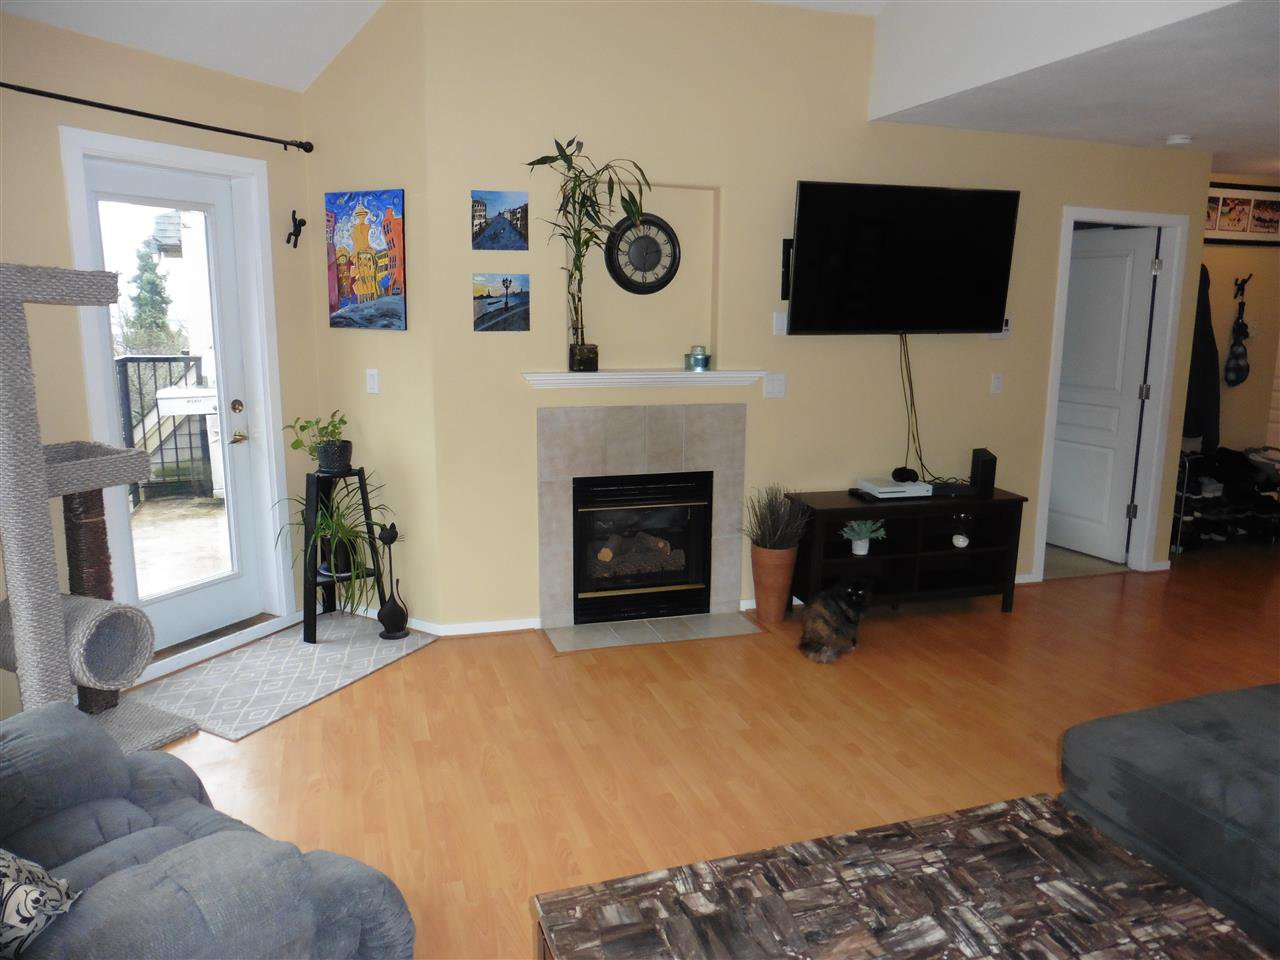 """Photo 5: Photos: 506 210 ELEVENTH Street in New Westminster: Uptown NW Condo for sale in """"DISCOVERY REACH"""" : MLS®# R2434040"""